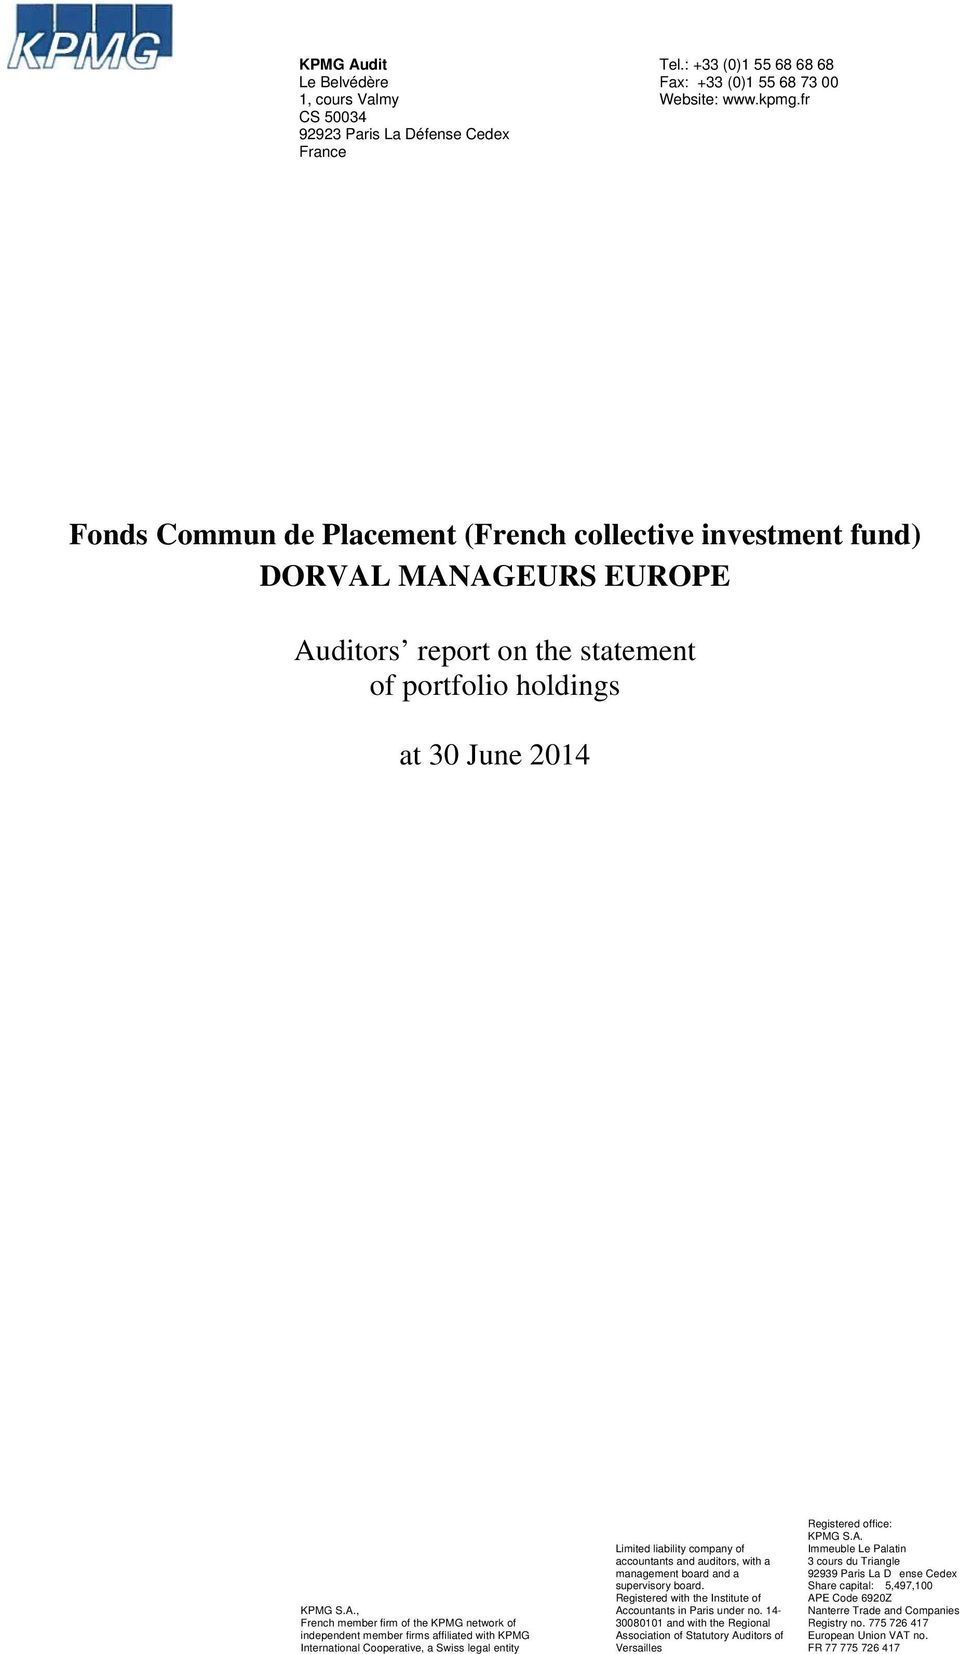 Fonds Commun de Placement (French collective investment fund